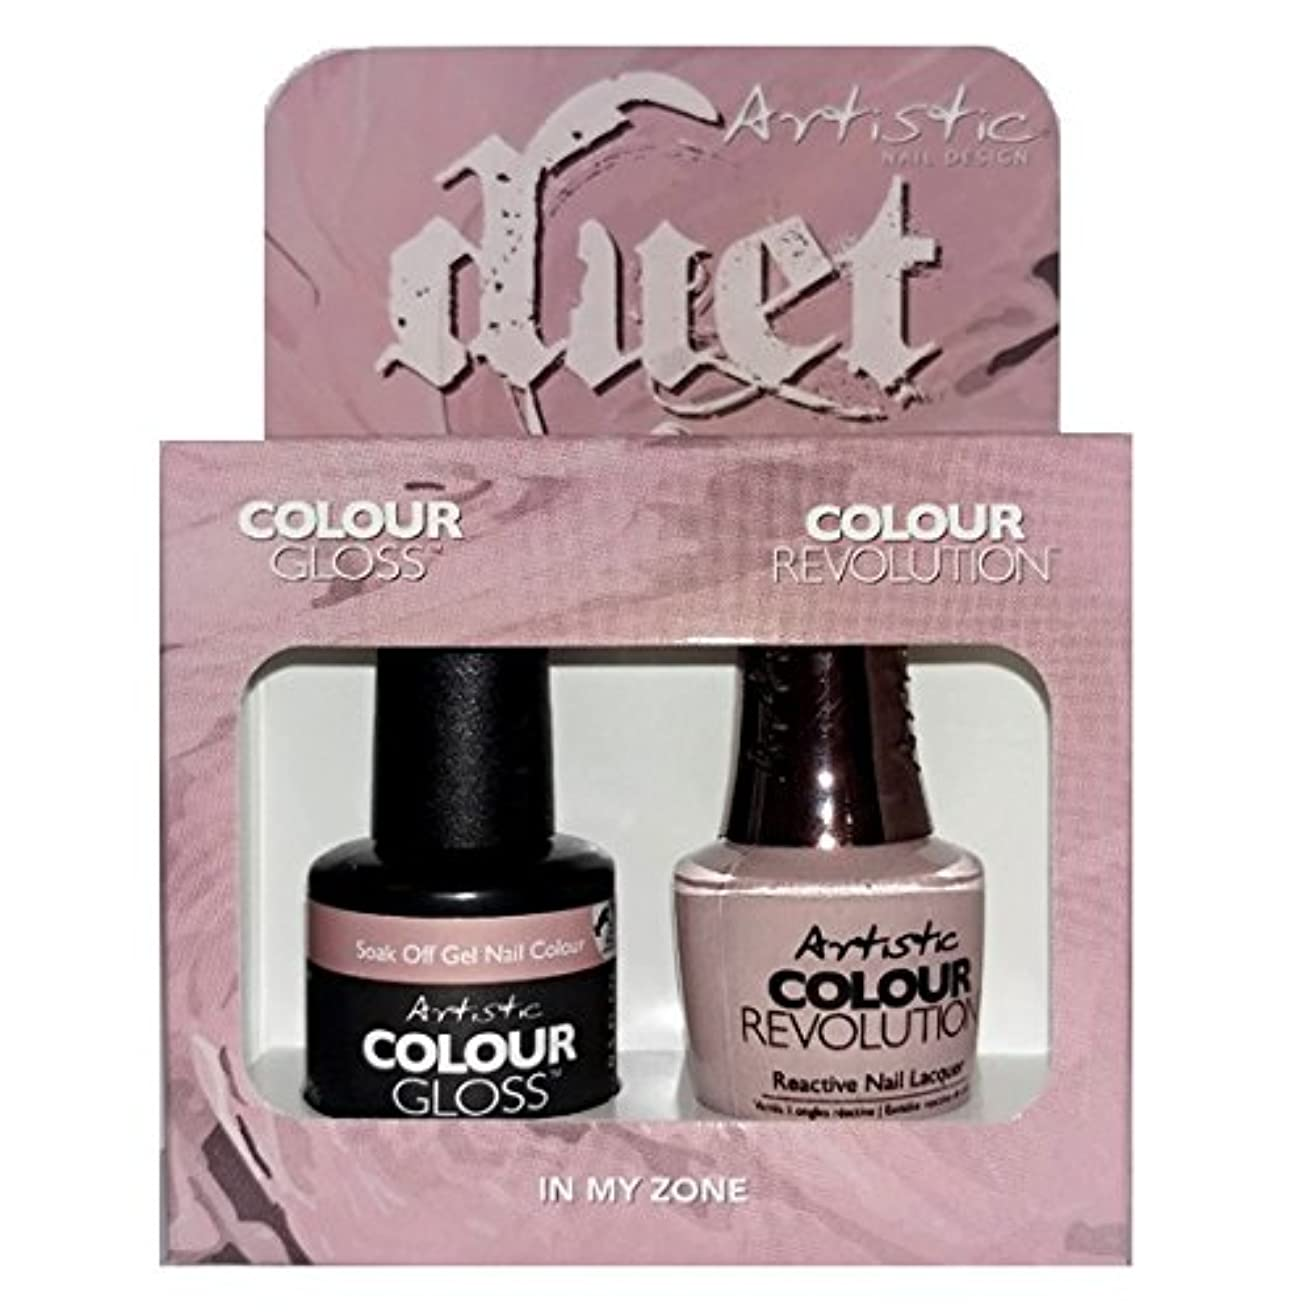 Artistic Nail Design - Duet Gel & Polish Duo - In My Zone - 15 mL / 0.5 oz each